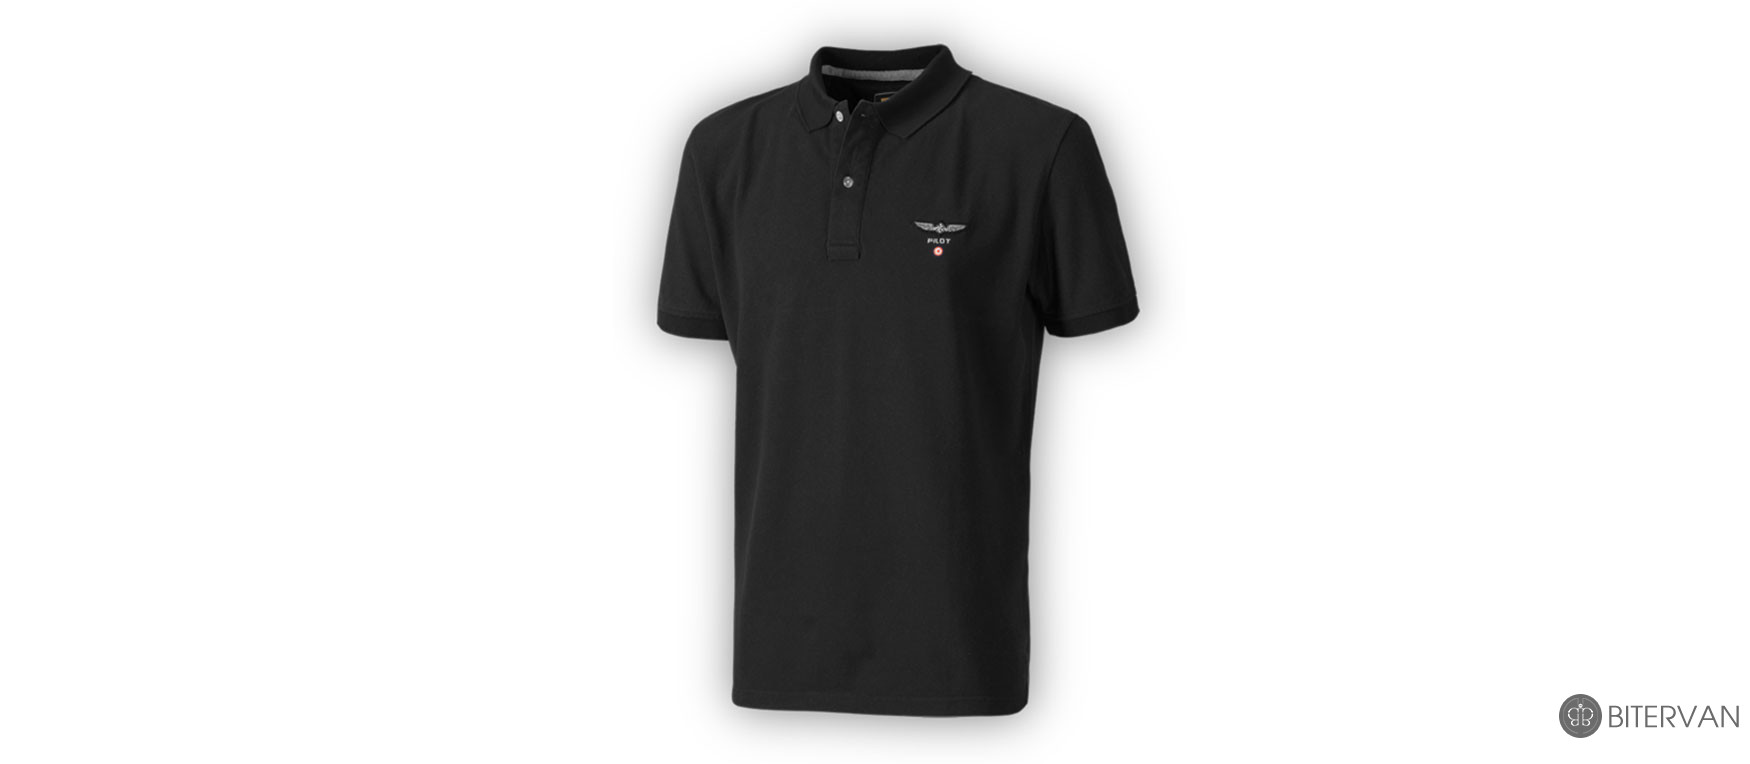 Design 4 Pilots PILOT POLO SHIRTS